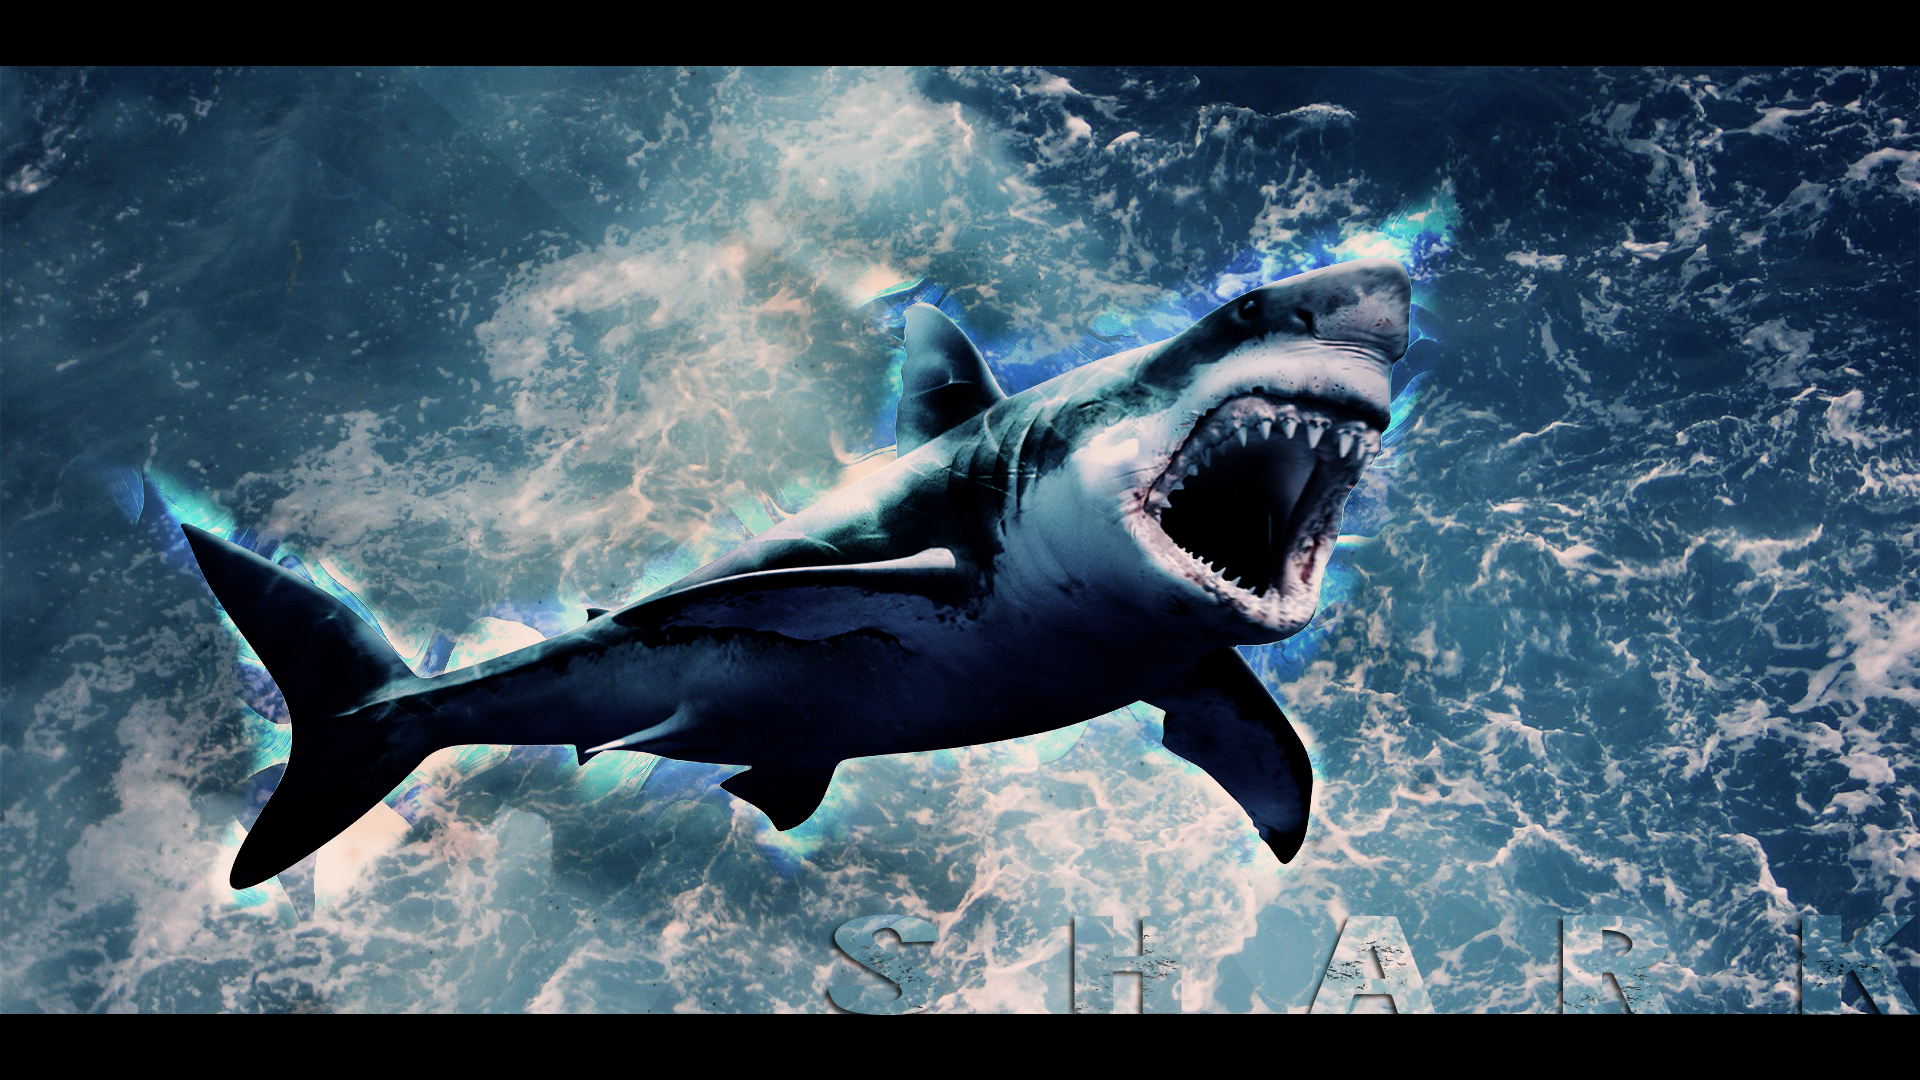 01.07.15 Sharks | Resolution: 1920x1080, Josephina Winsett